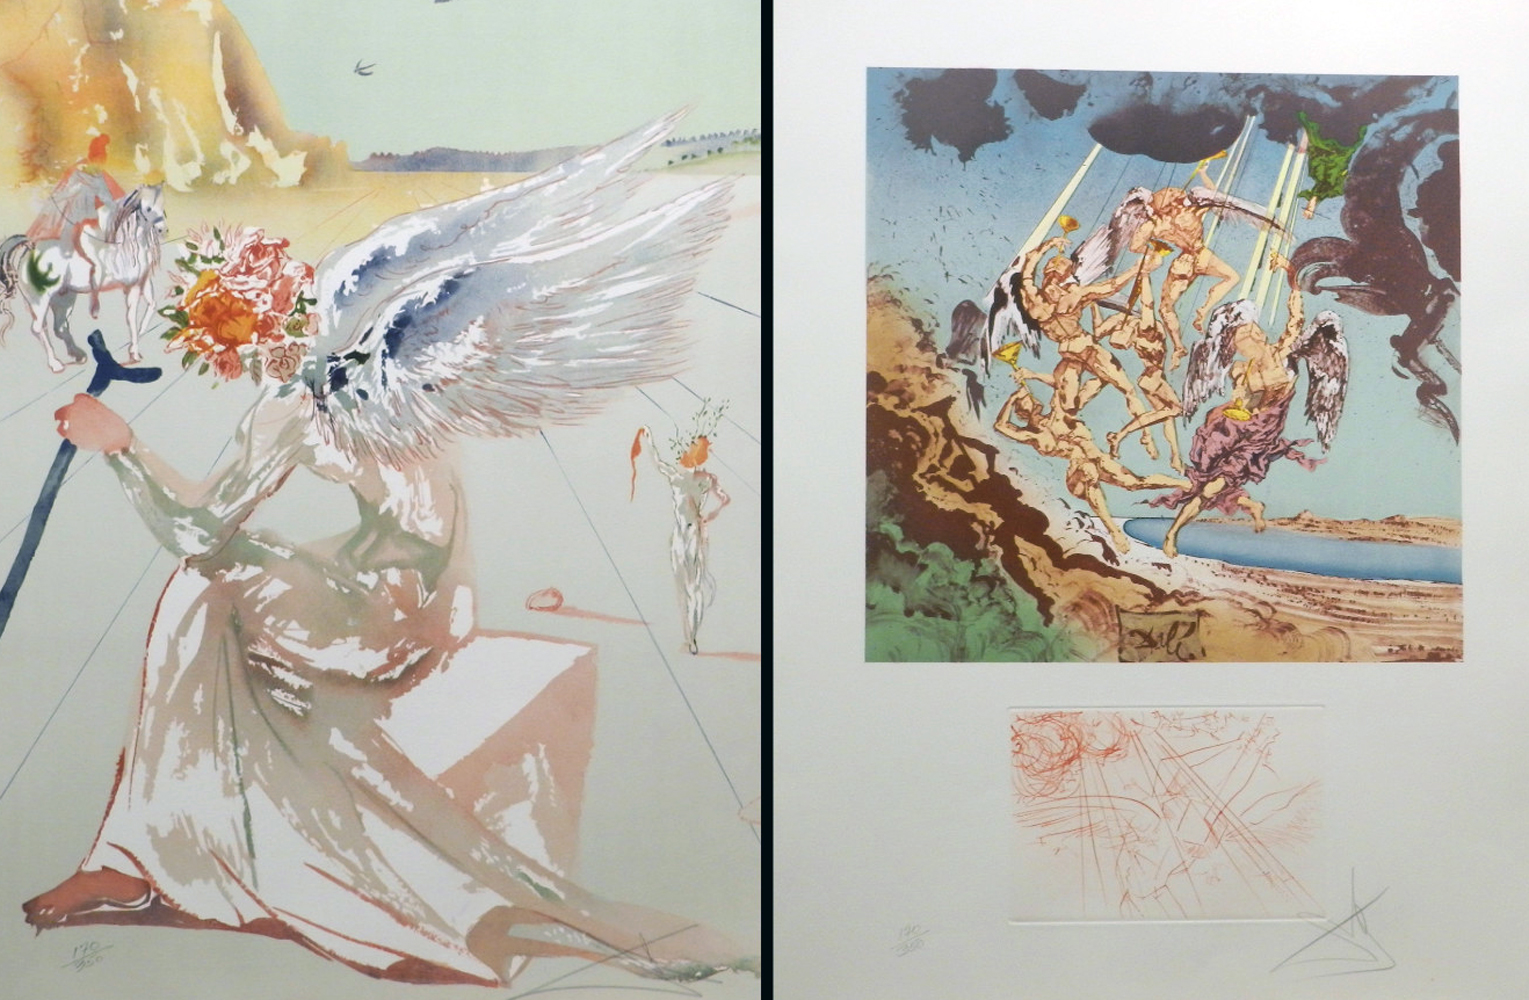 Homage a Homere Suite of 2 Etchings (Helen of Troy, Return of Ulysses) 1971 by Salvador Dali